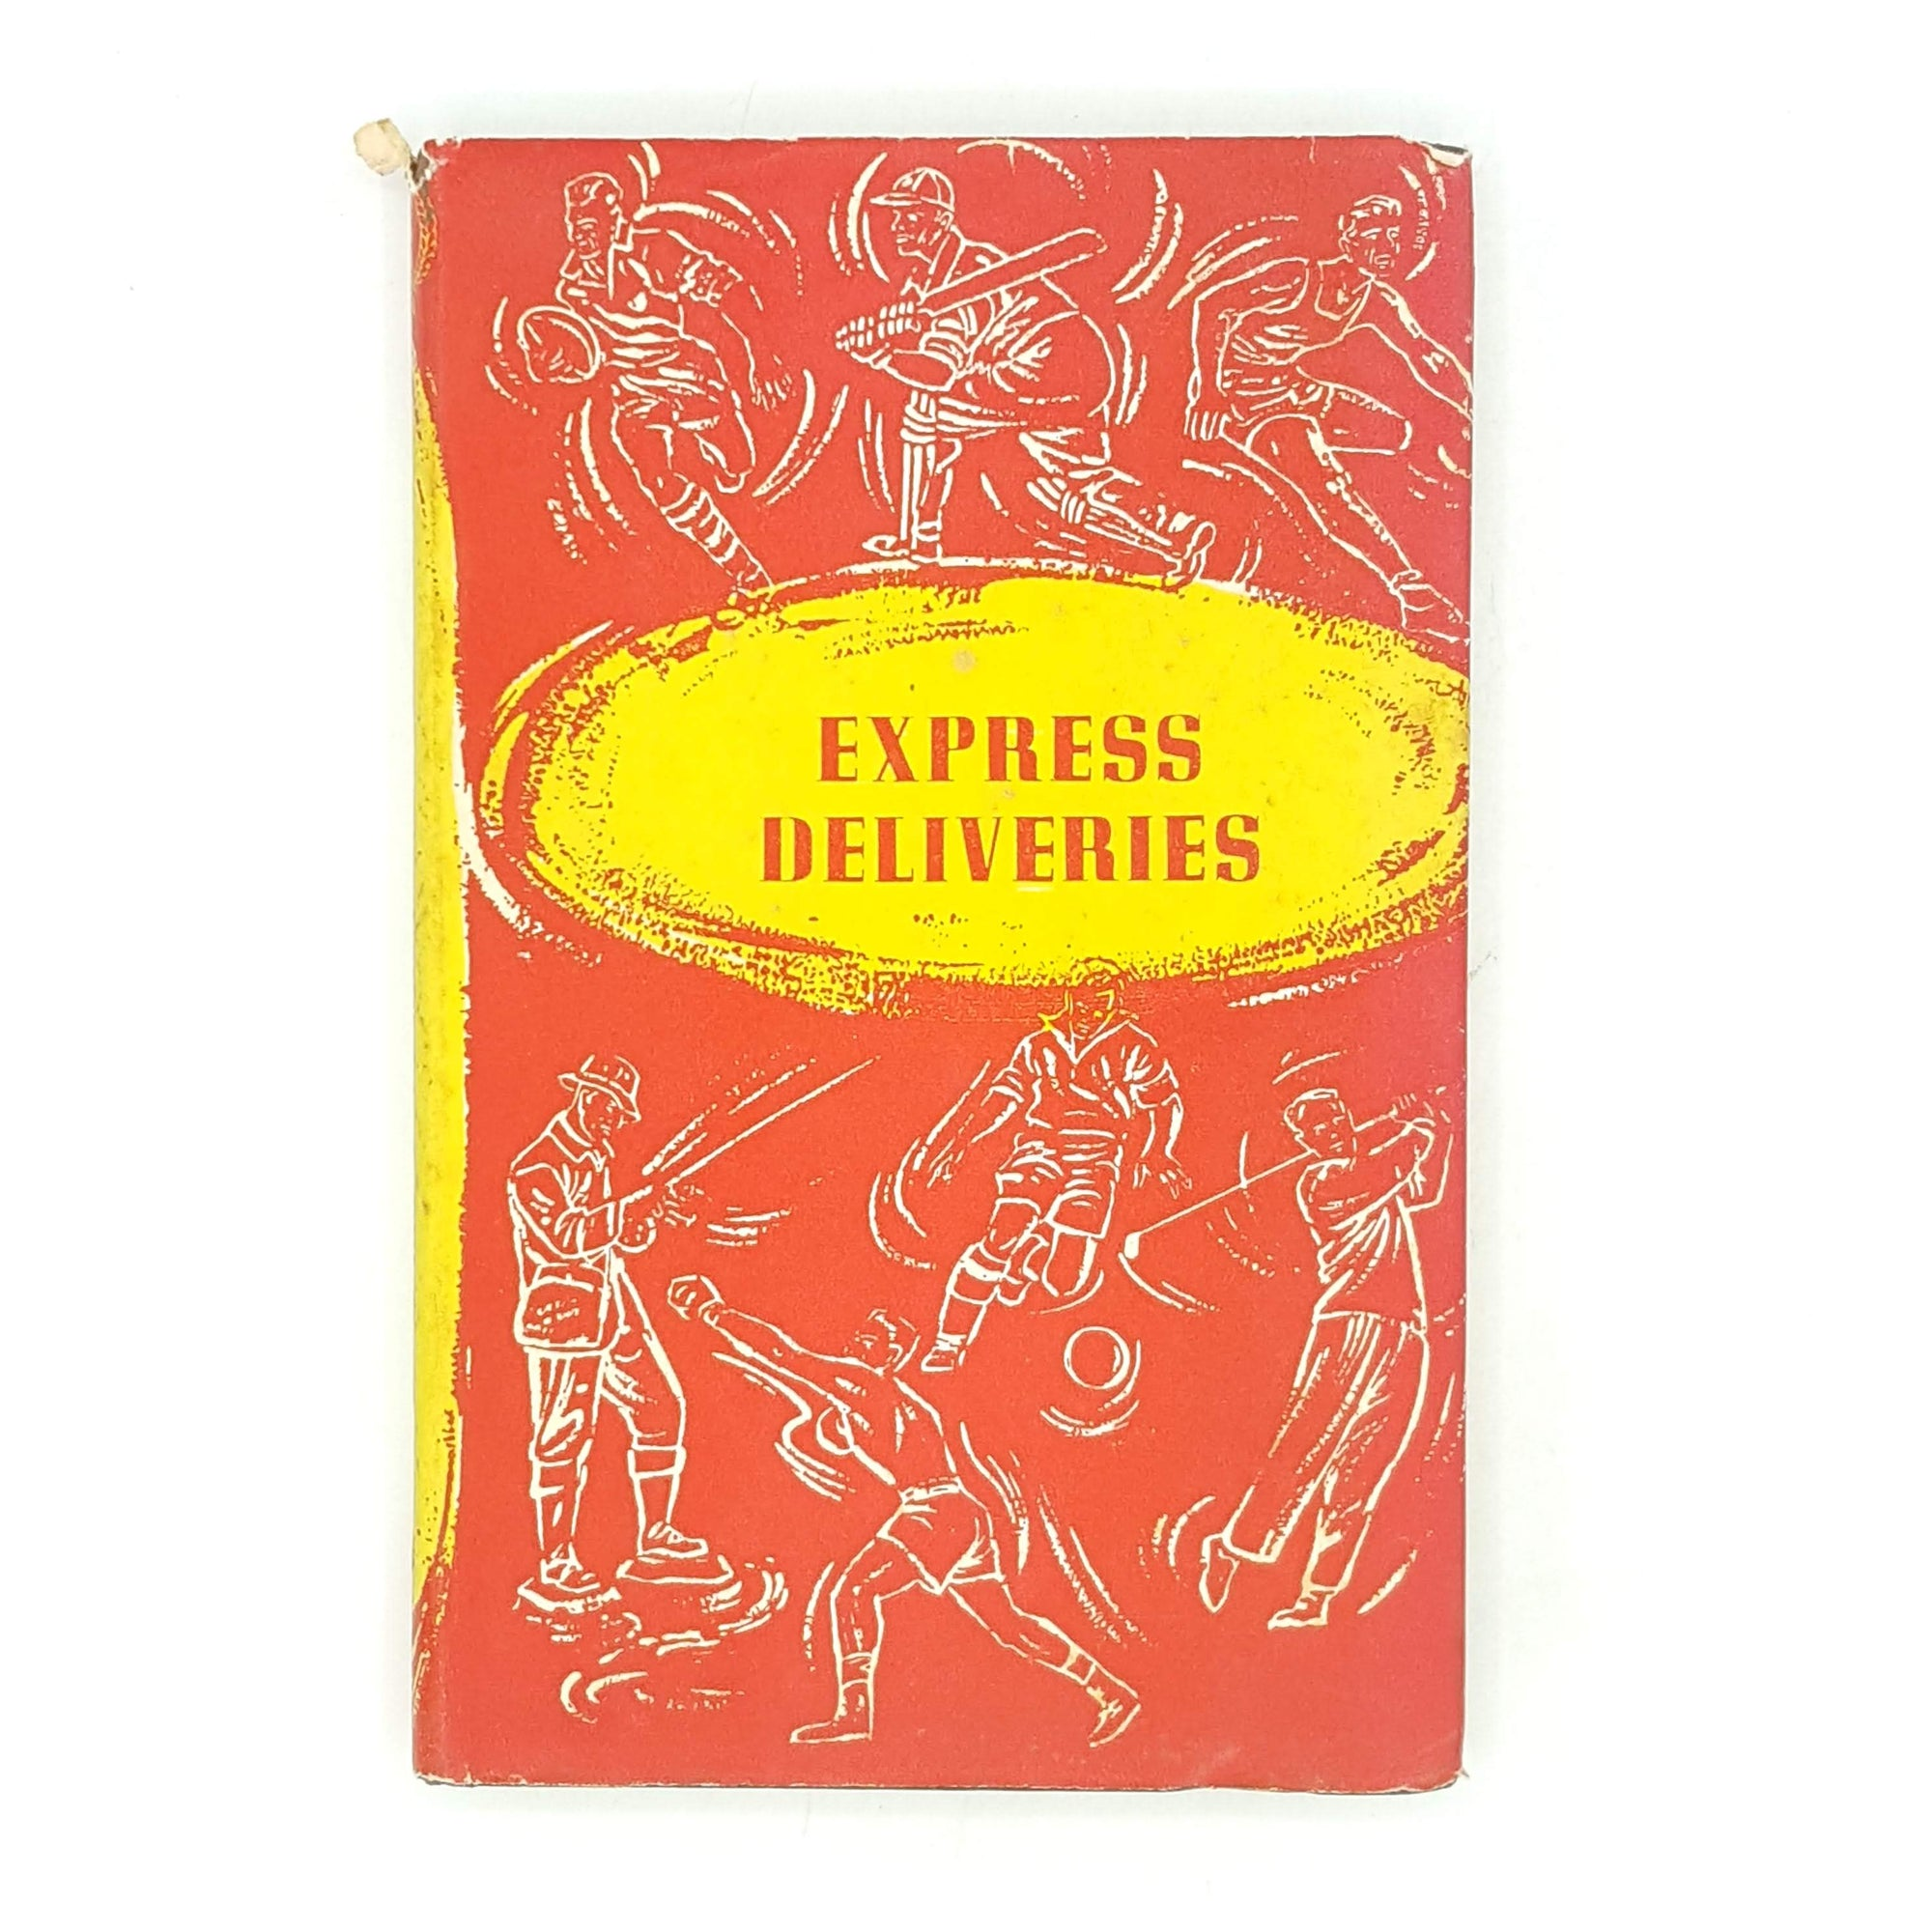 Express Deliveries by Bill Bowes 1958